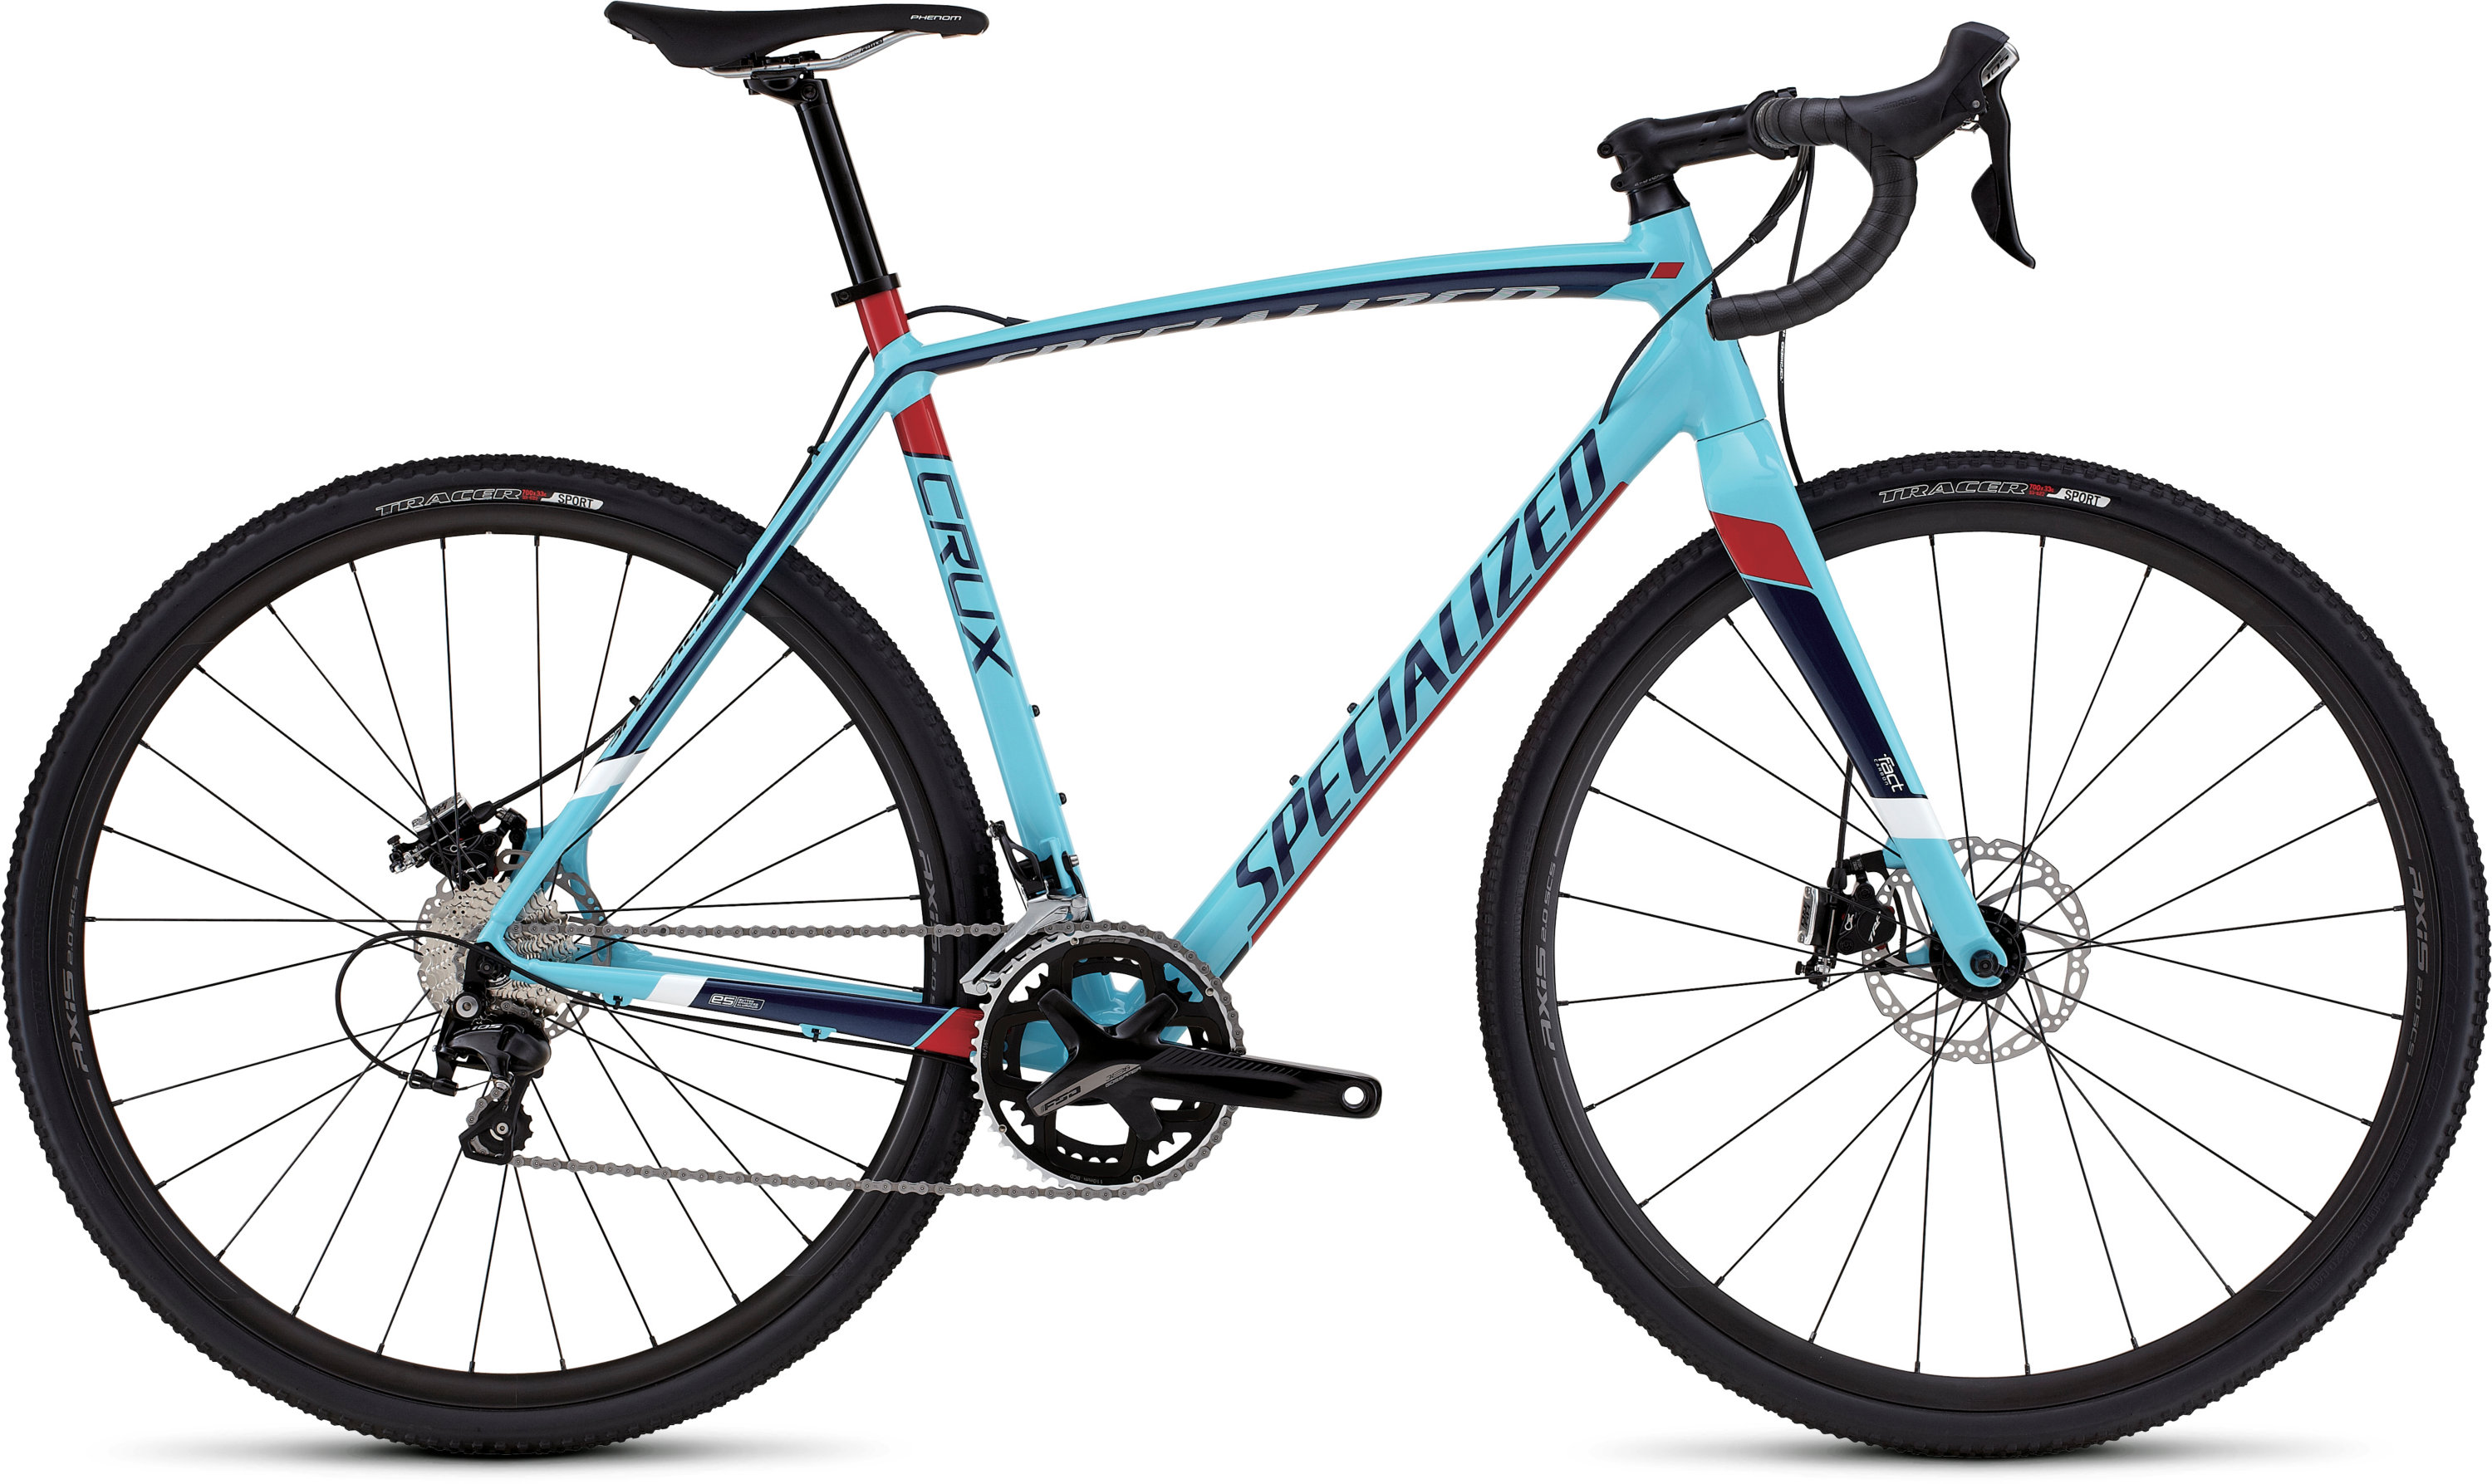 SPECIALIZED CRUX SPORT E5 LTBLU/NVY/RED/BLK/WHT 46 - schneider-sports